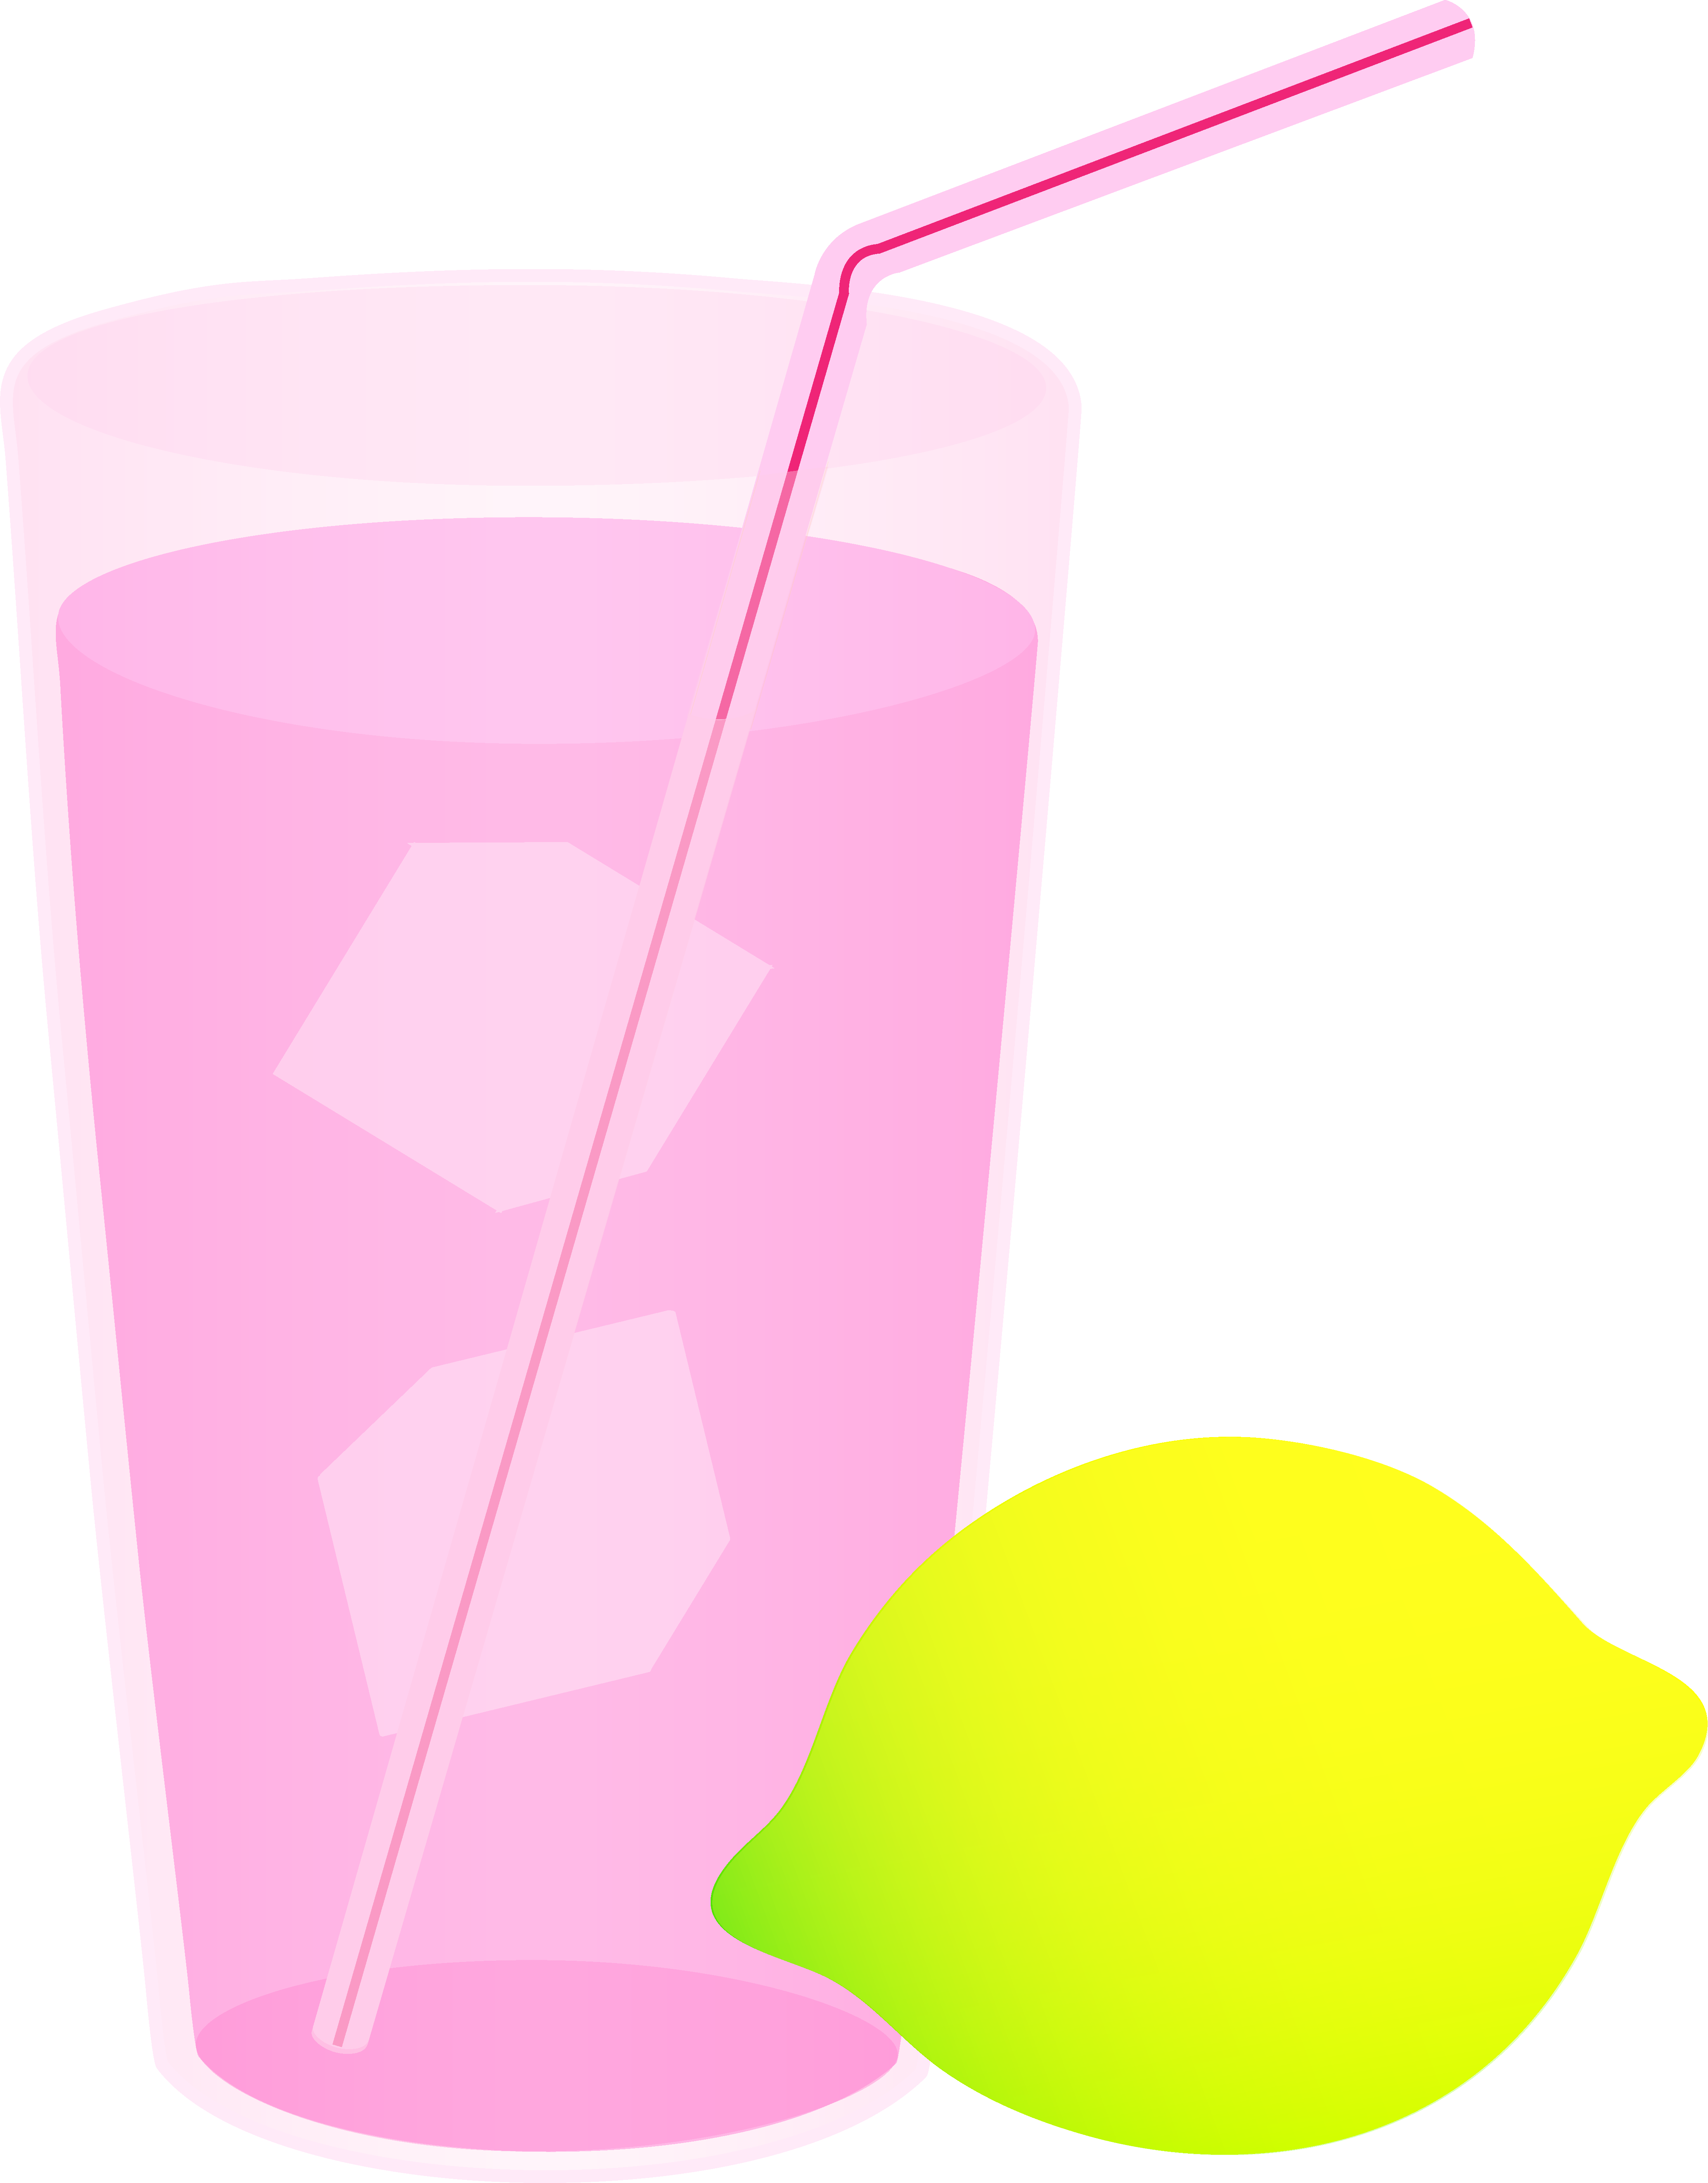 Glass of Pink Lemonade.